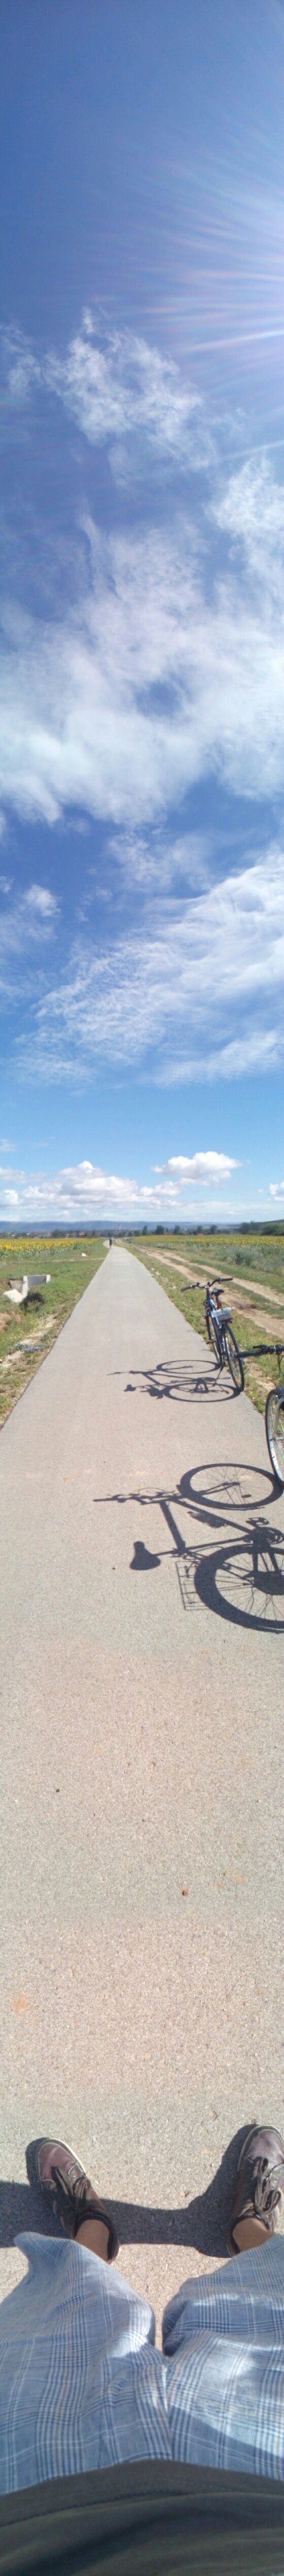 Cycling - Panorama Pic